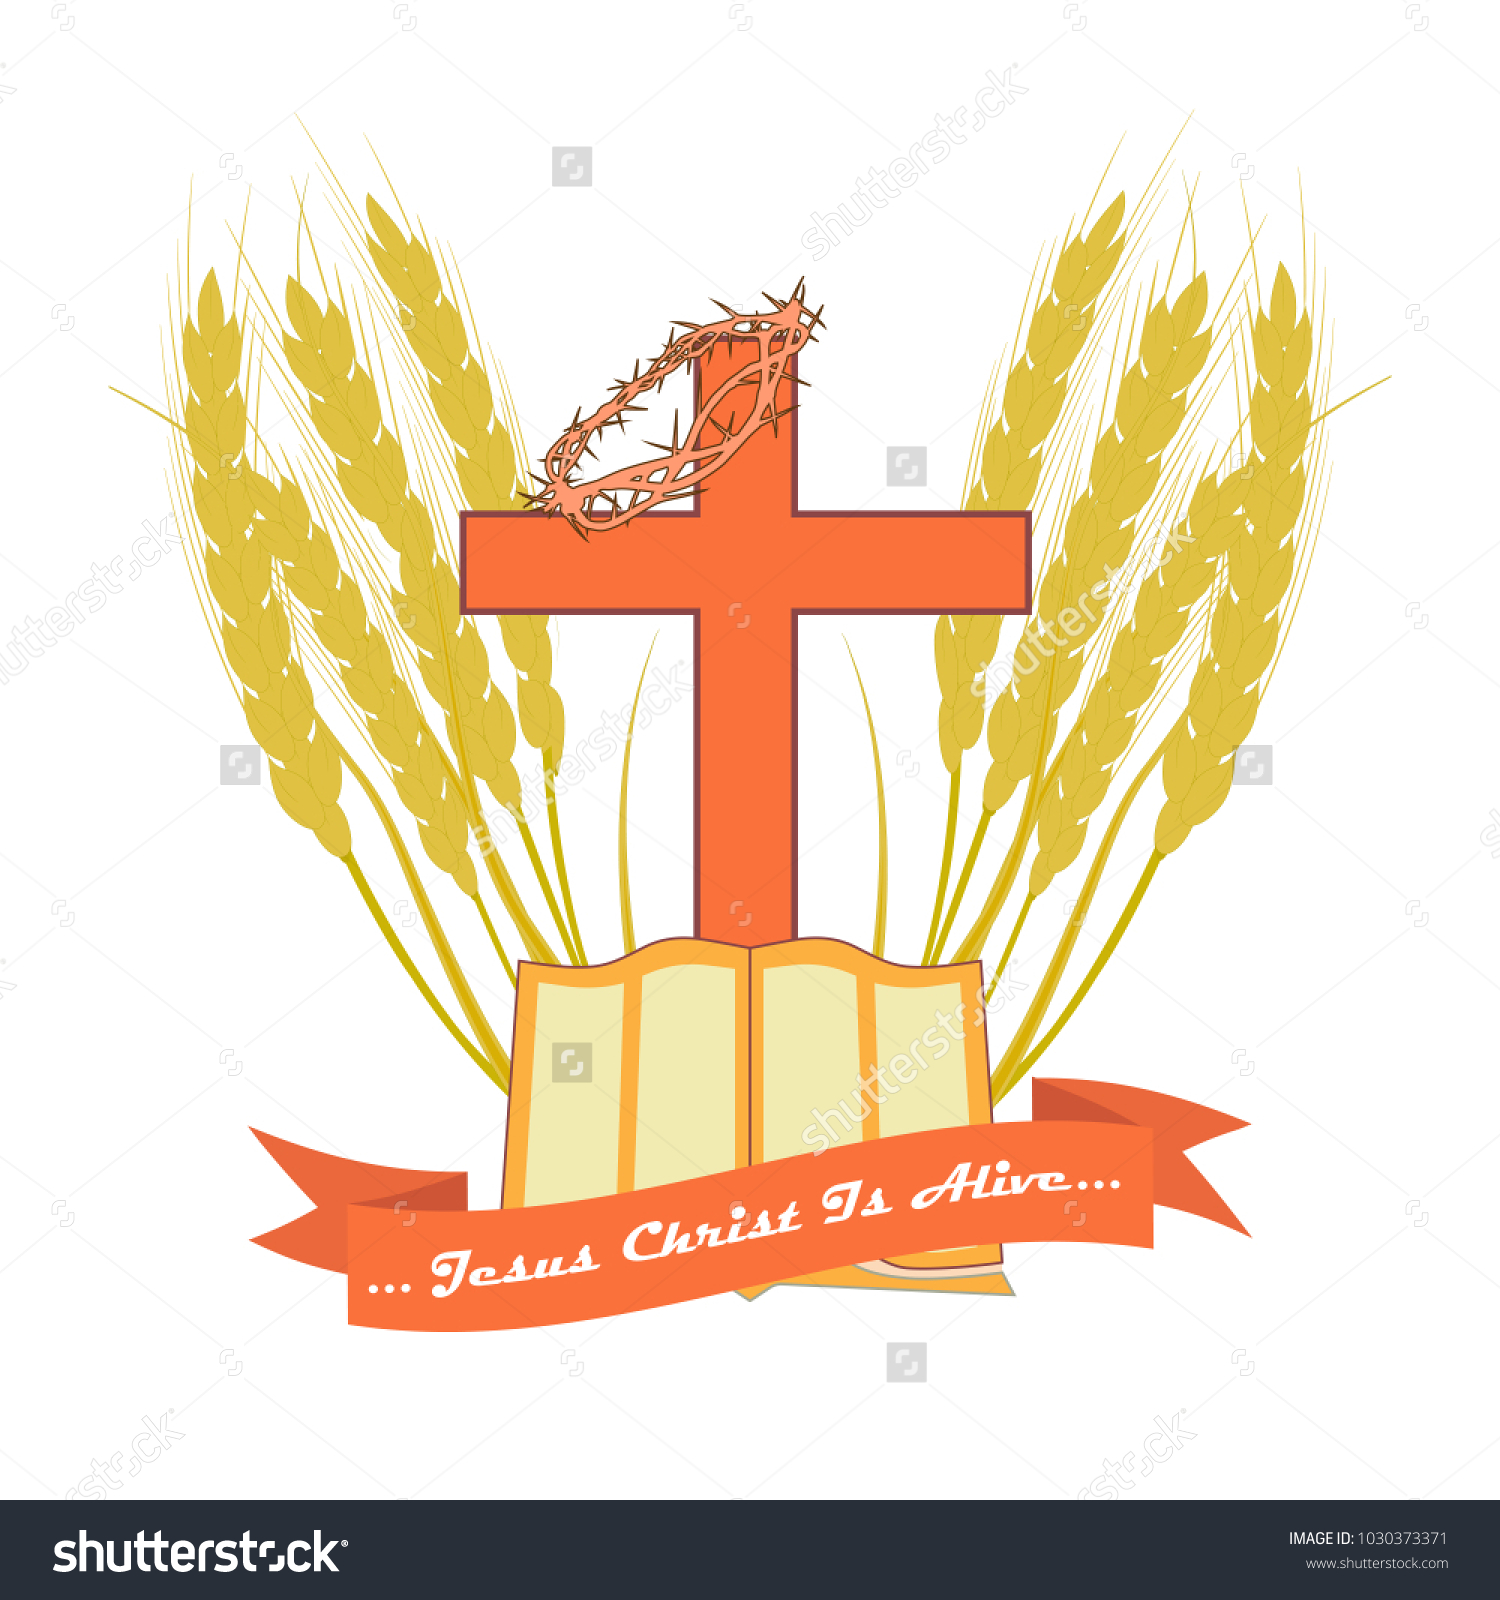 Bible christian cross edging made wheat stock vector 1030373371 the bible and the christian cross in edging made from wheat ears vector logo for buycottarizona Choice Image